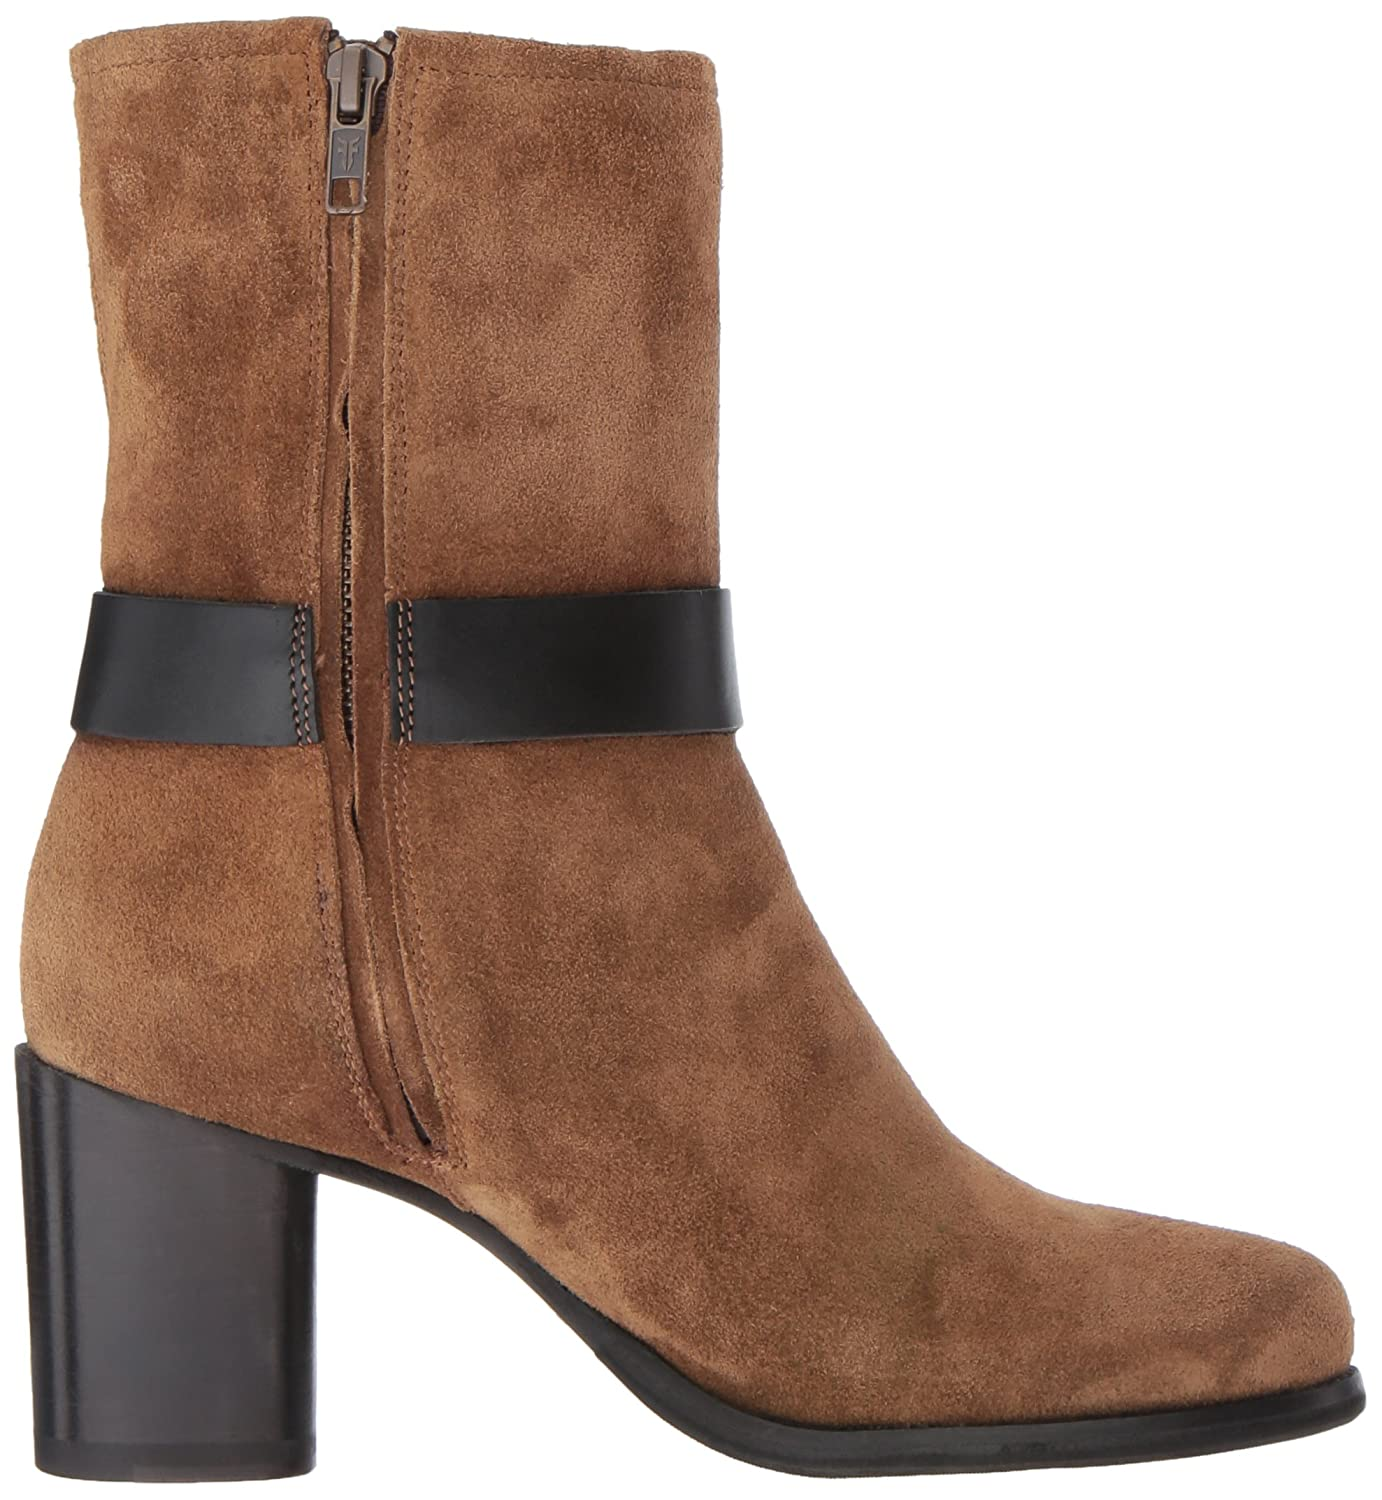 FRYE B01MYXSKPO Women's Addie Harness Mid Boot B01MYXSKPO FRYE 9.5 B(M) US|Chestnut Suede b88a30